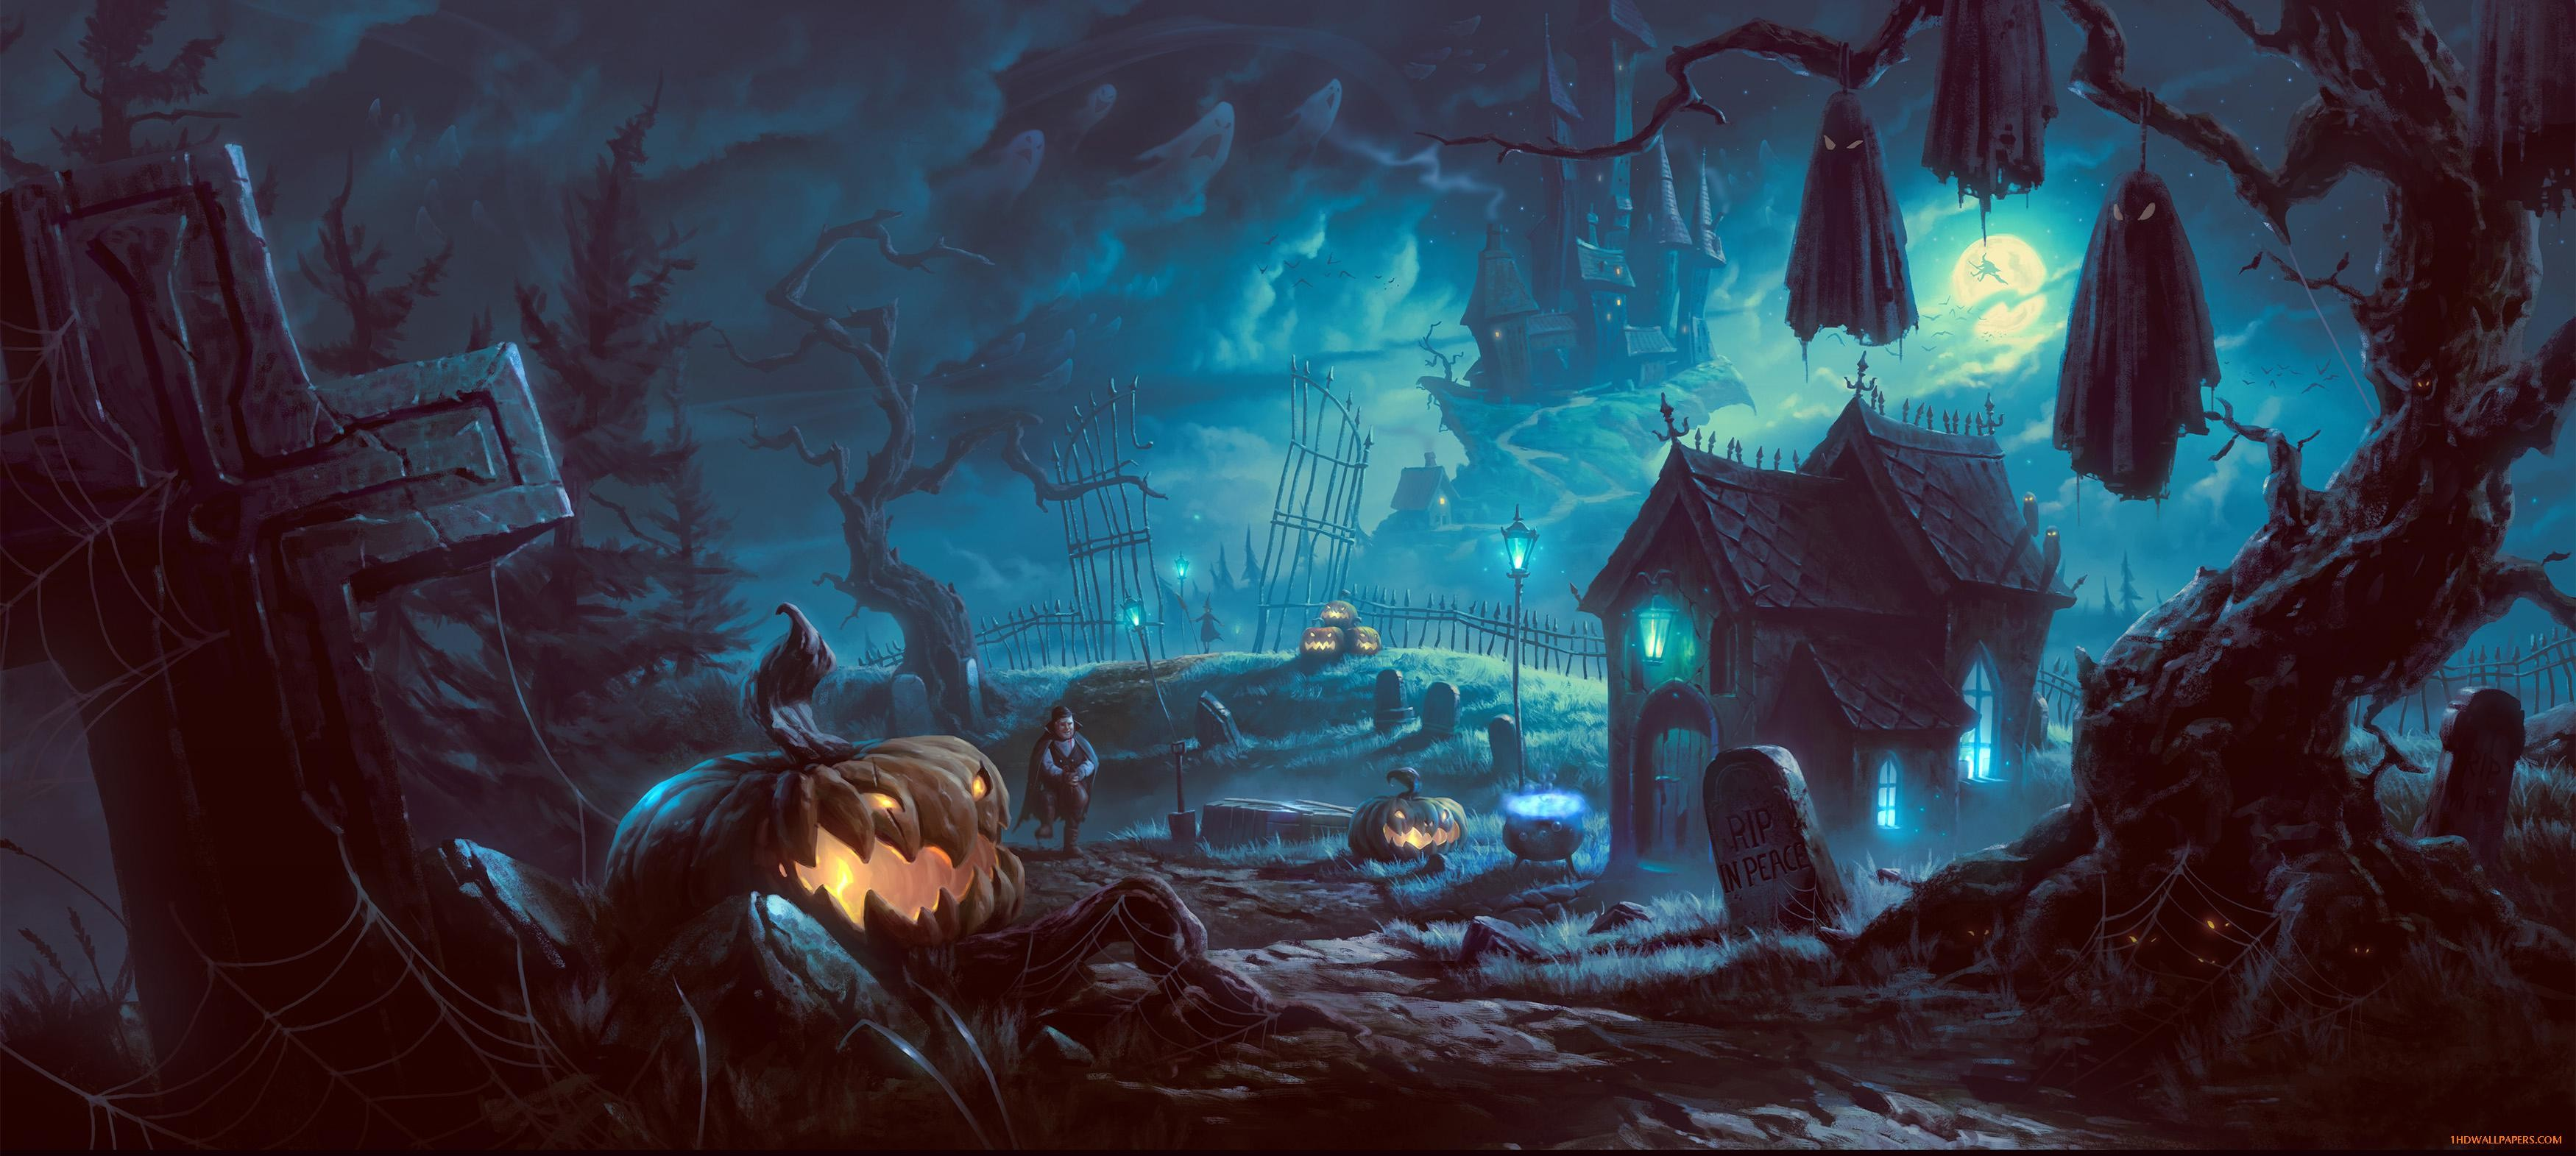 23 halloween backgrounds desktop download free amazing - Best site to download anime wallpapers ...